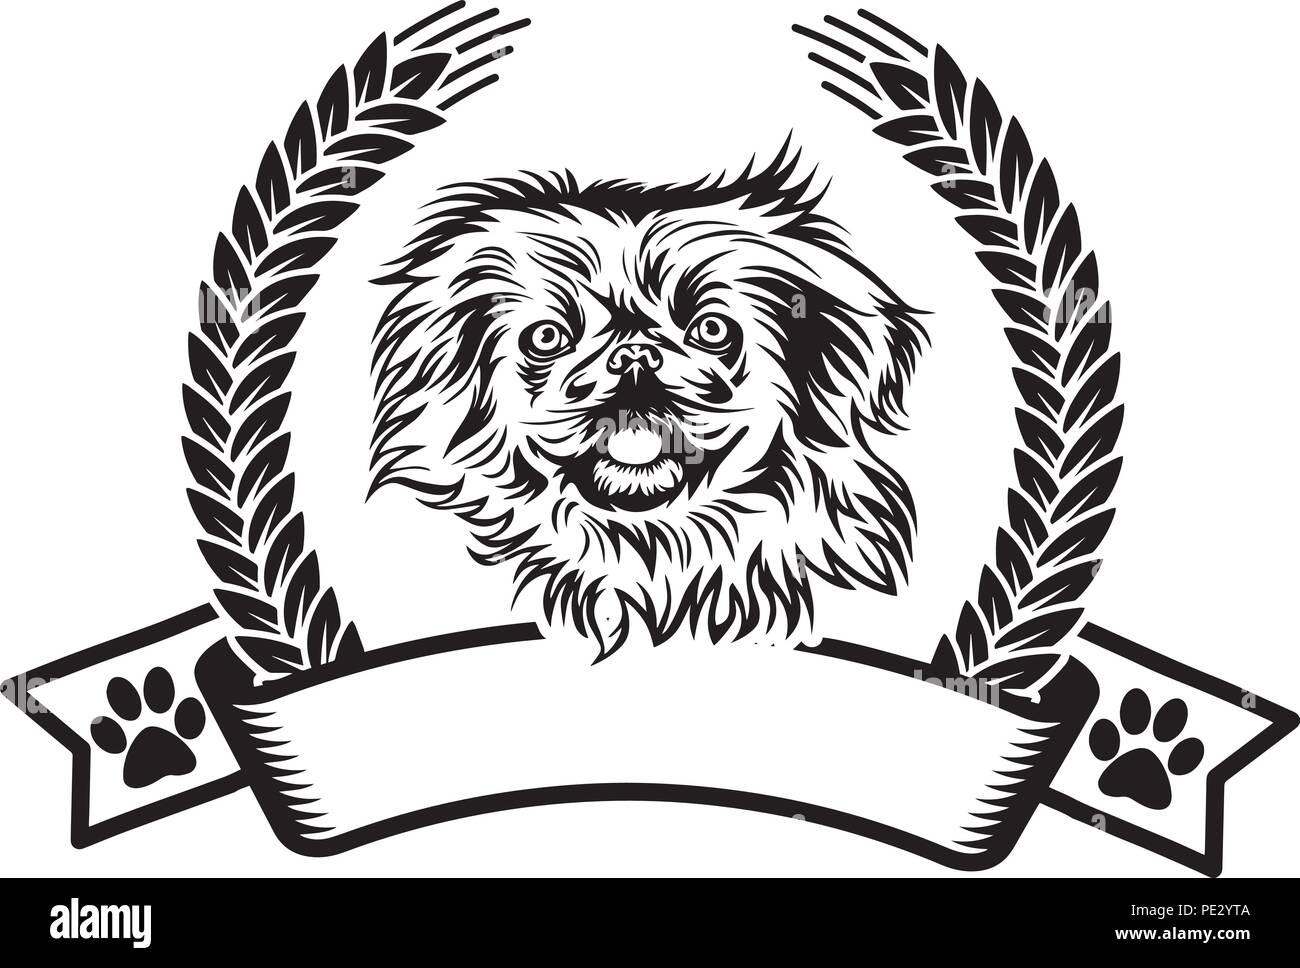 Pekingese Dog Dog Breed Pet Puppy Isolated Head Face Stock Vector